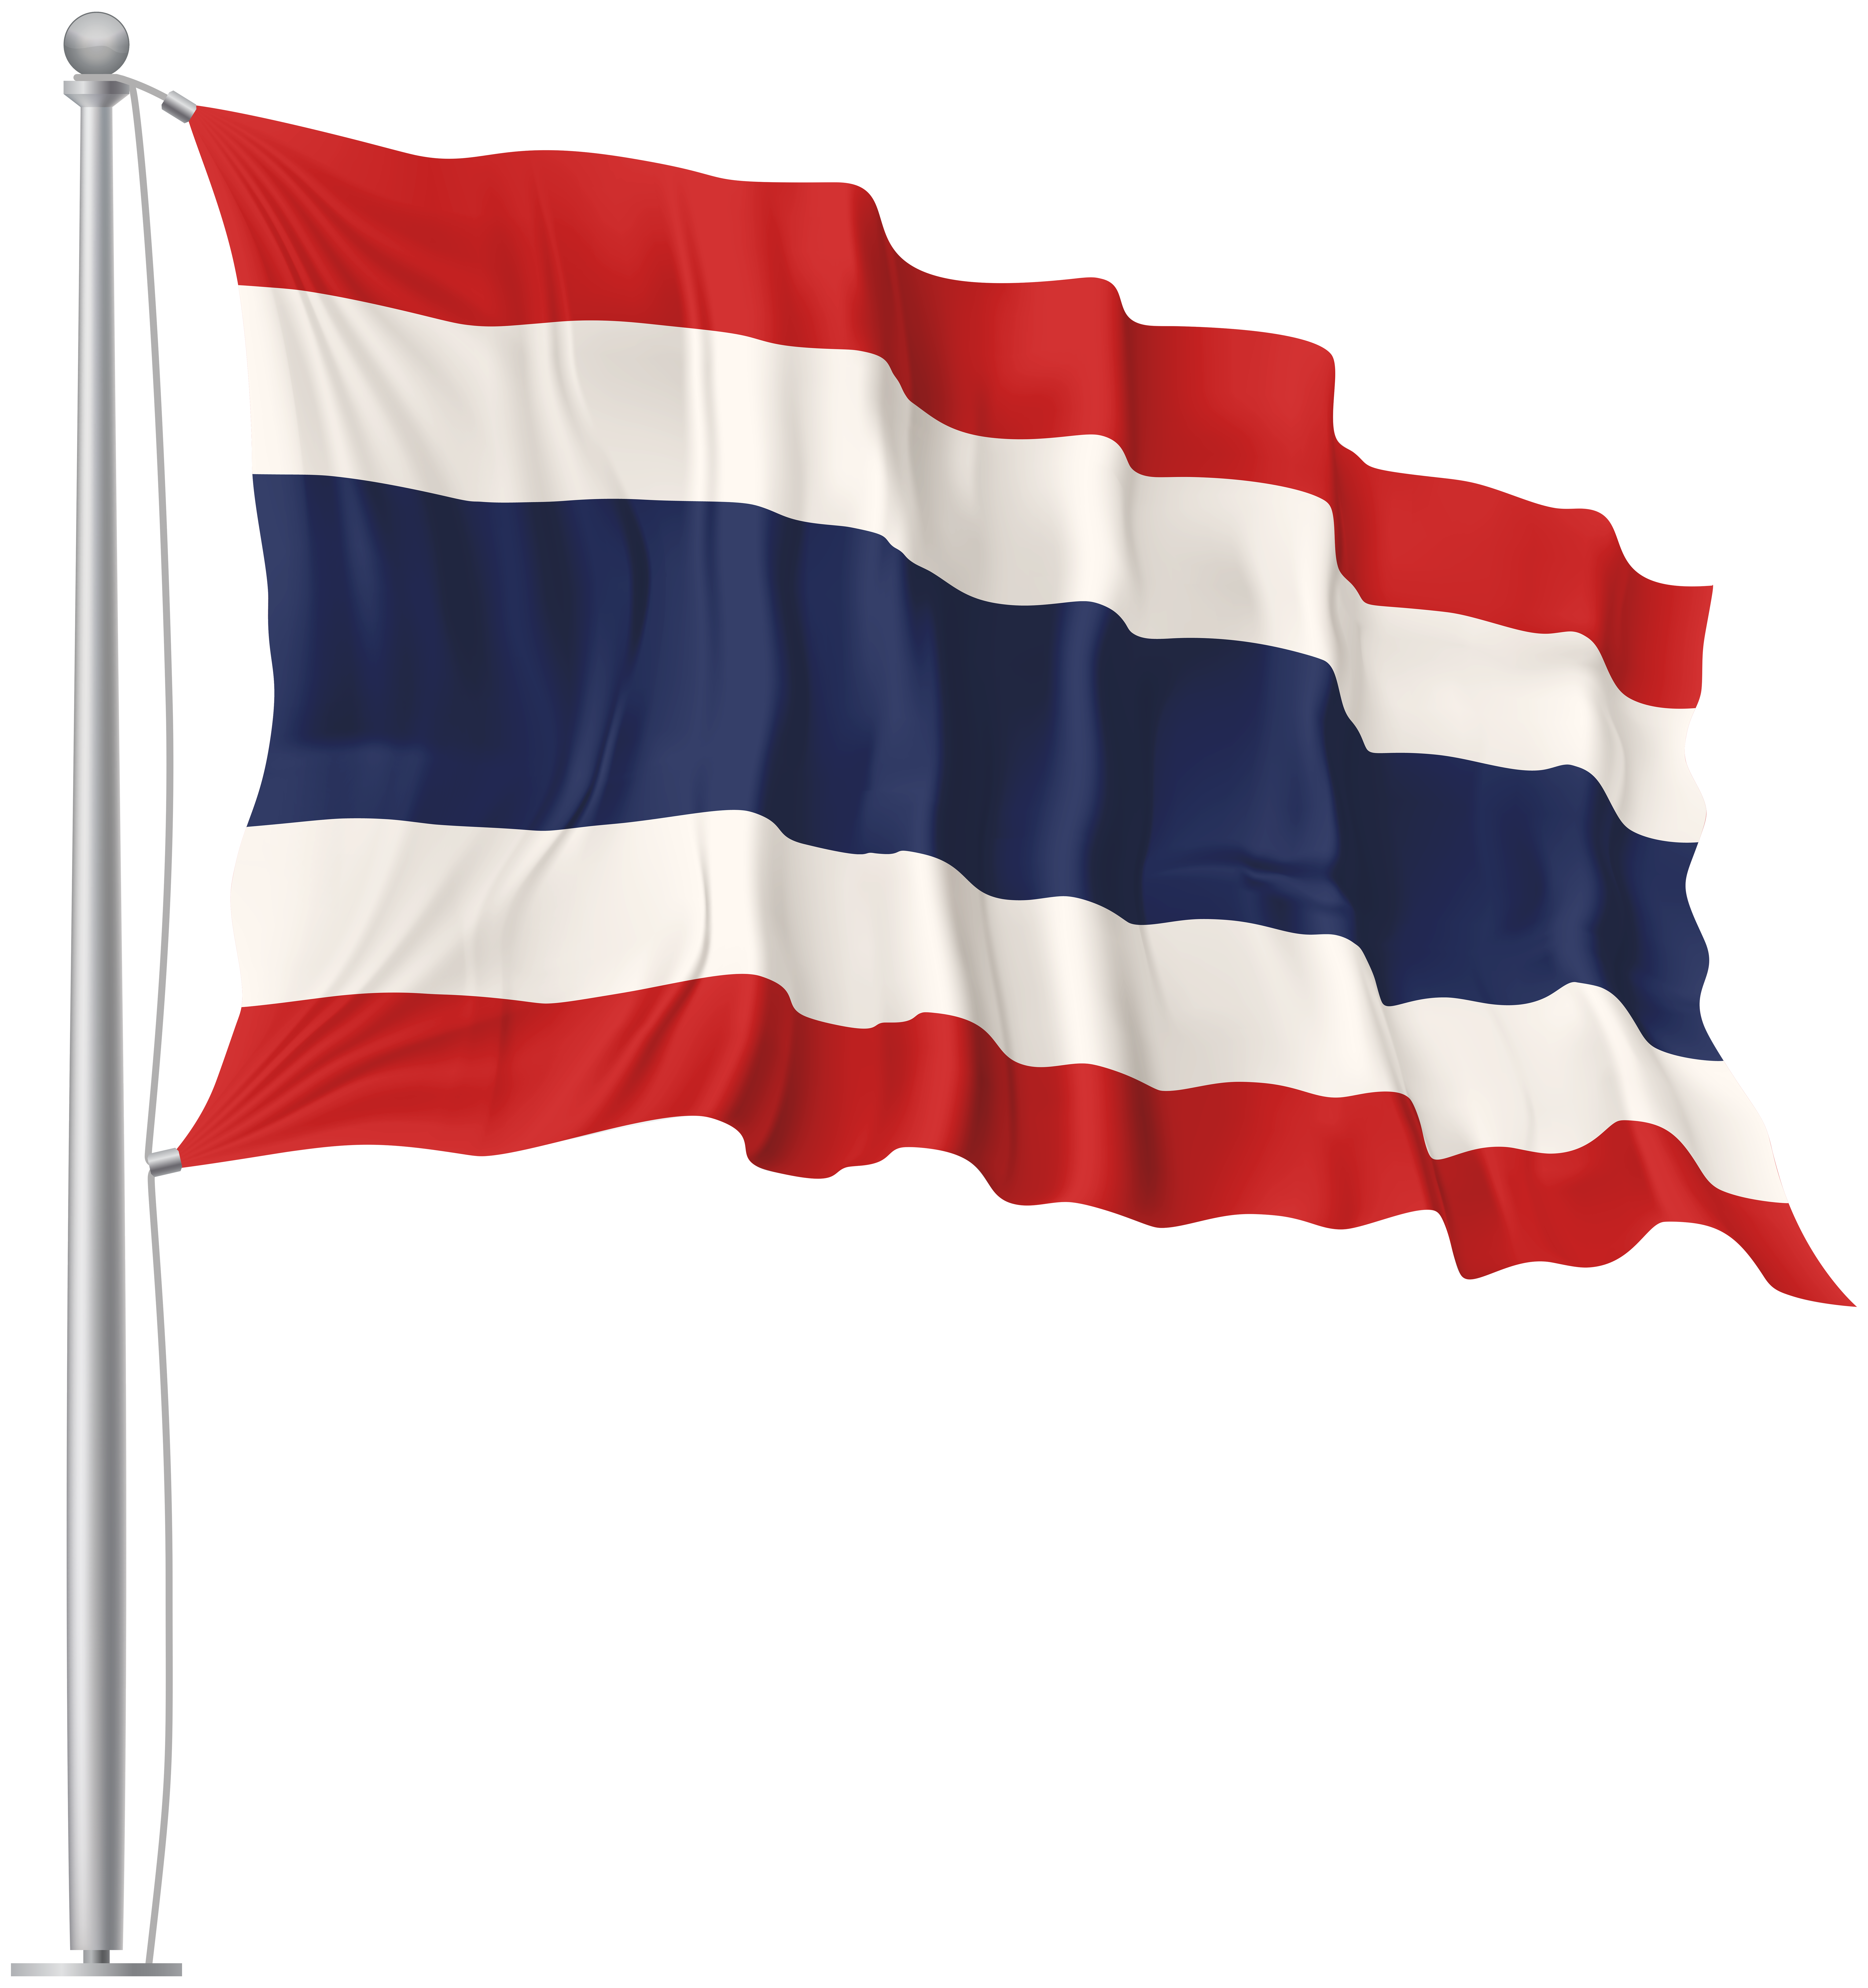 Thailand waving flag image. Flags png banner library